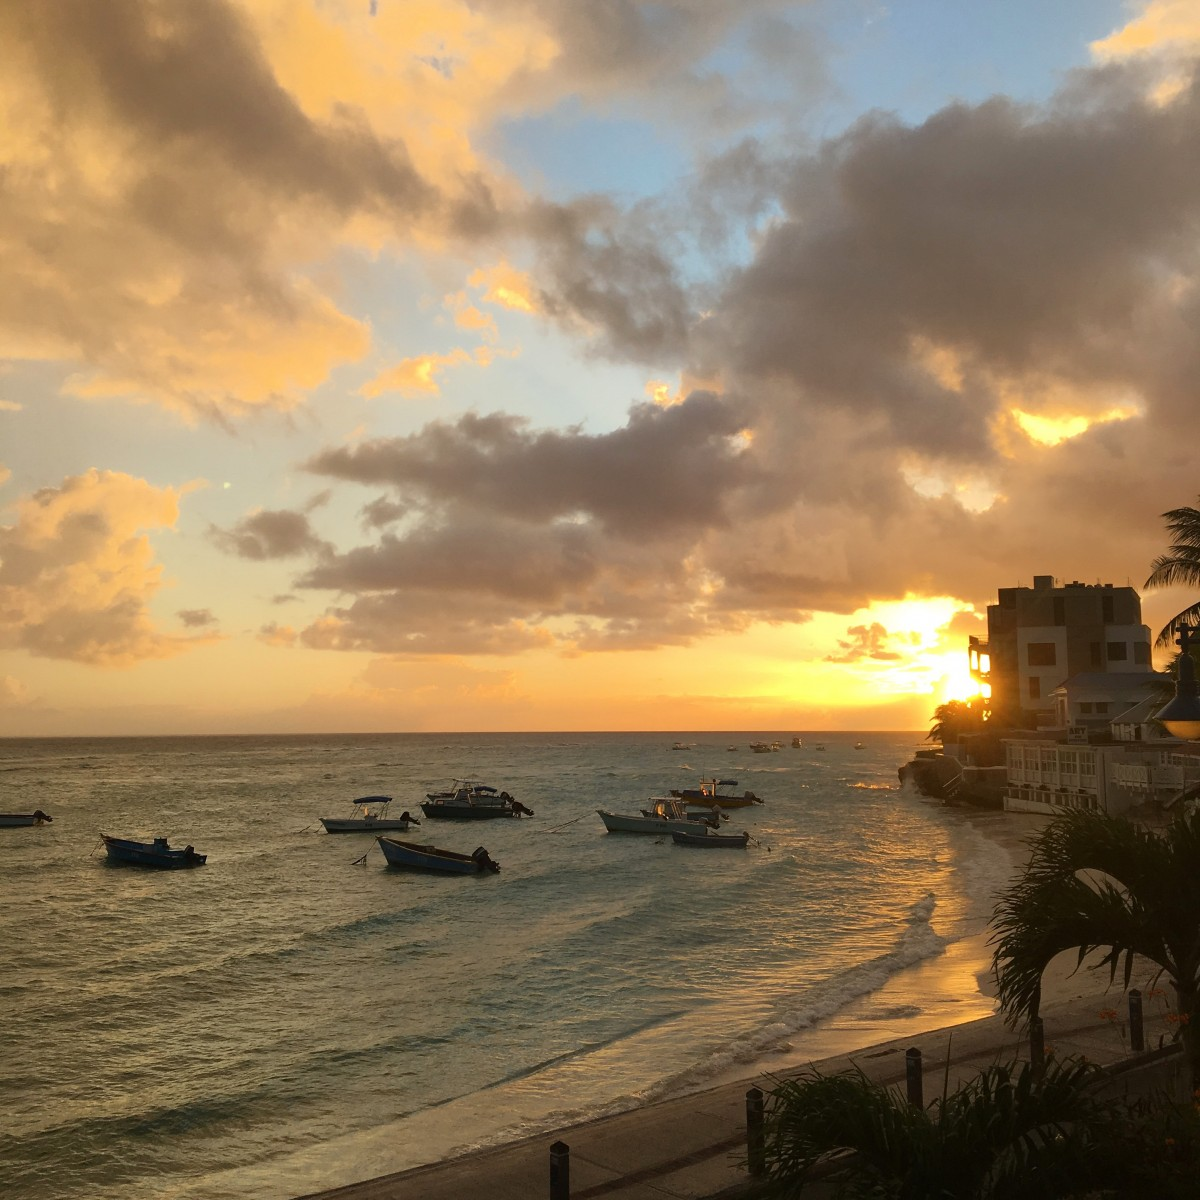 The beach at sunset in Barbados